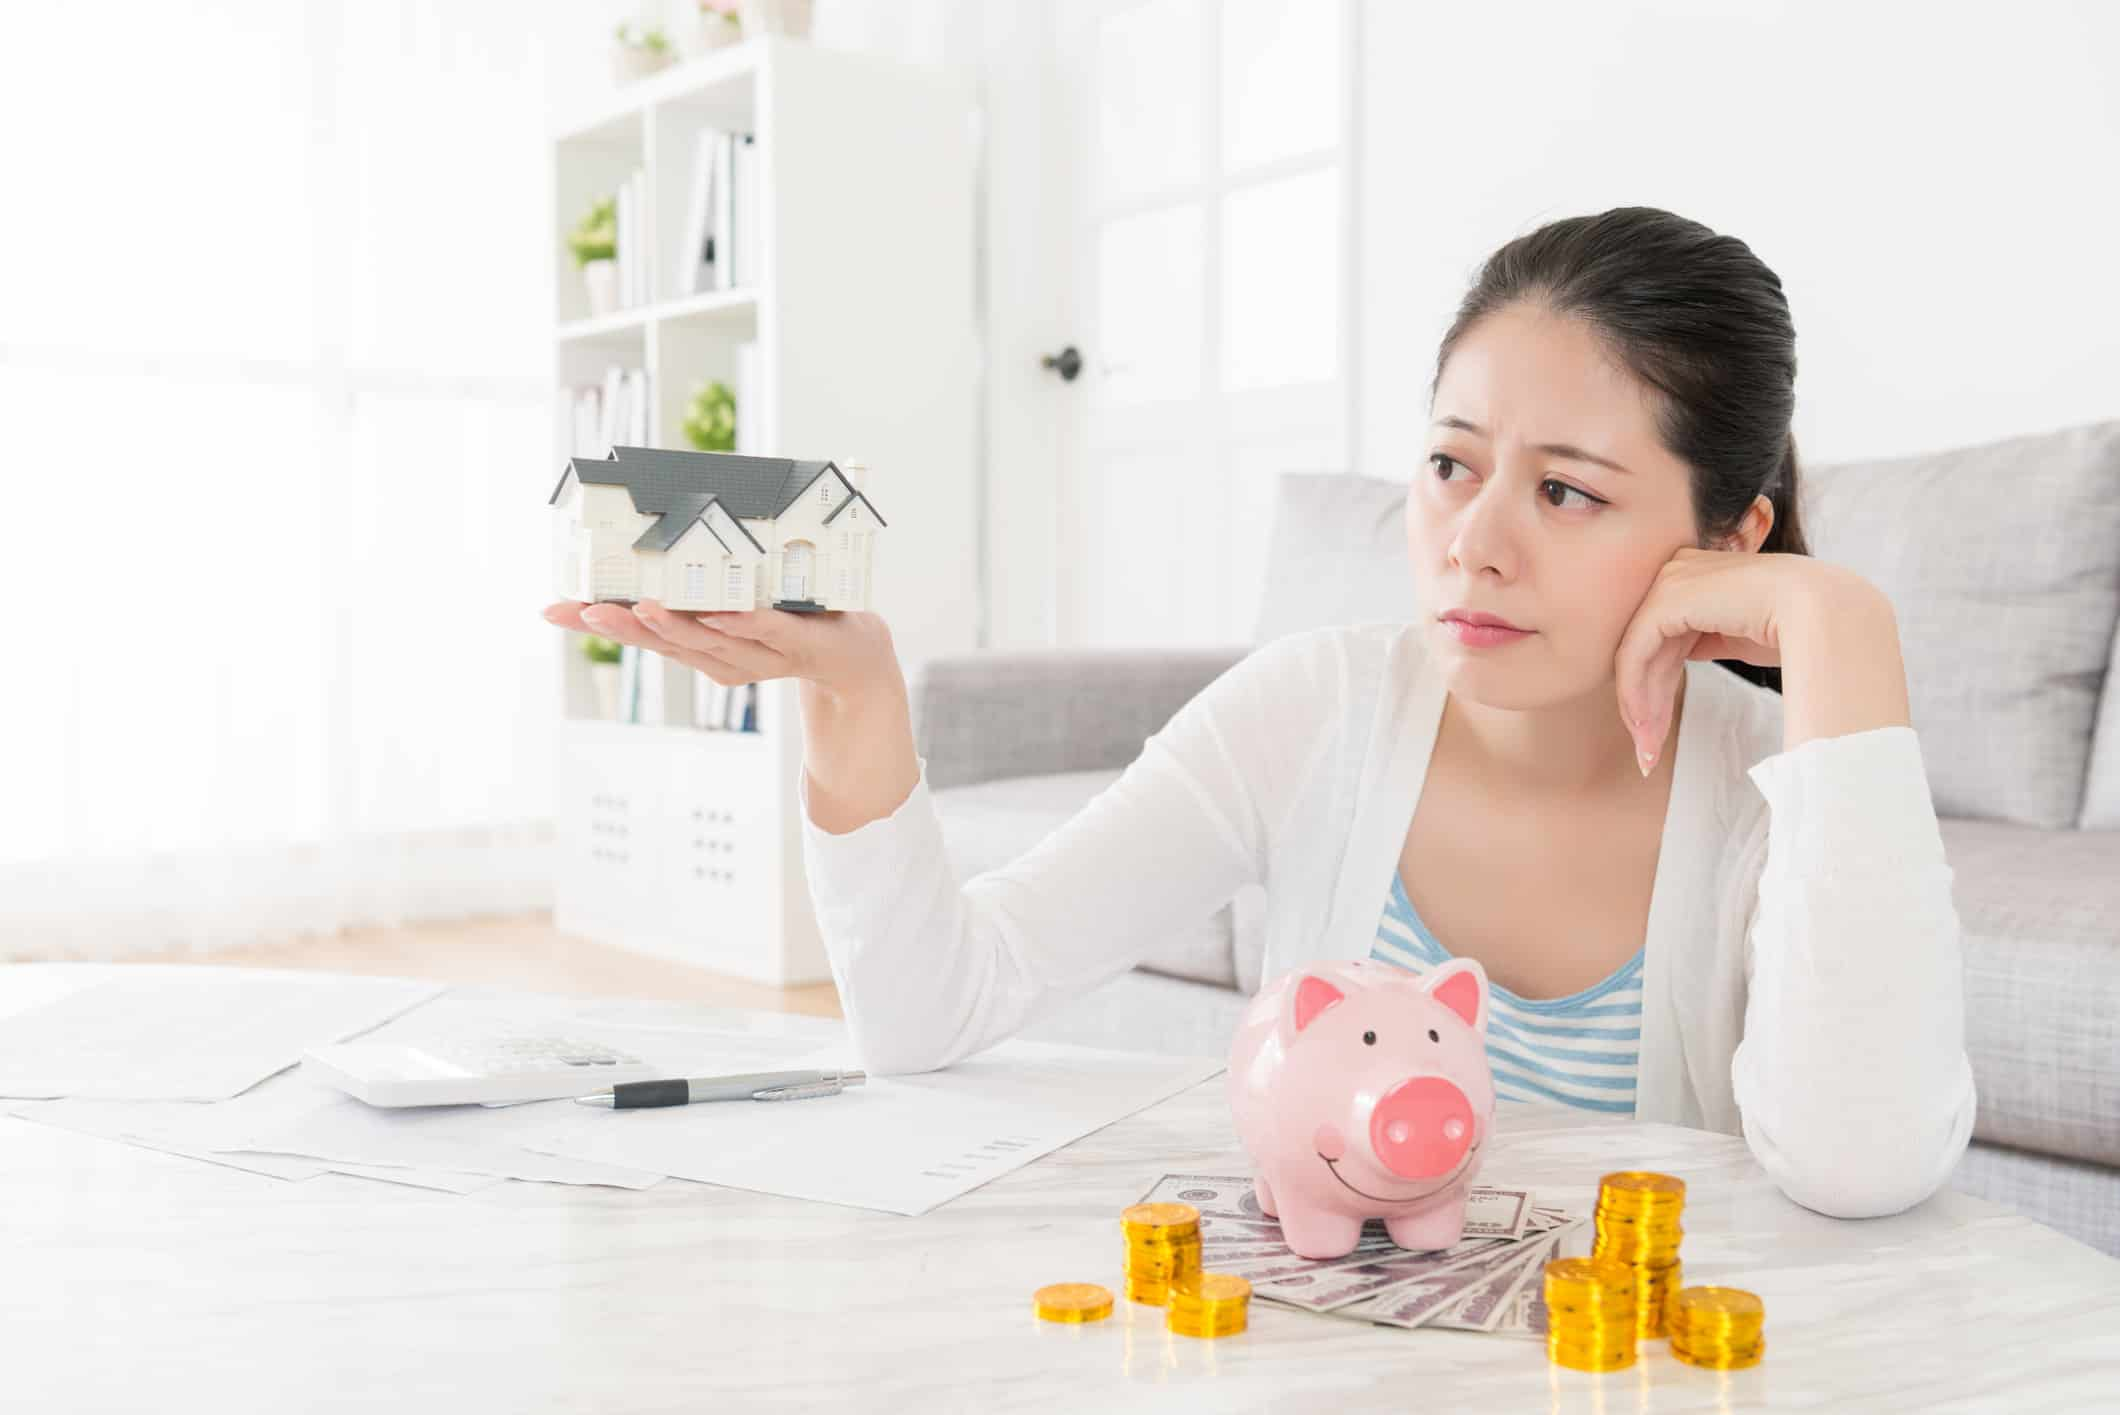 Women deciding how much she will sacrifice to purchase a home.